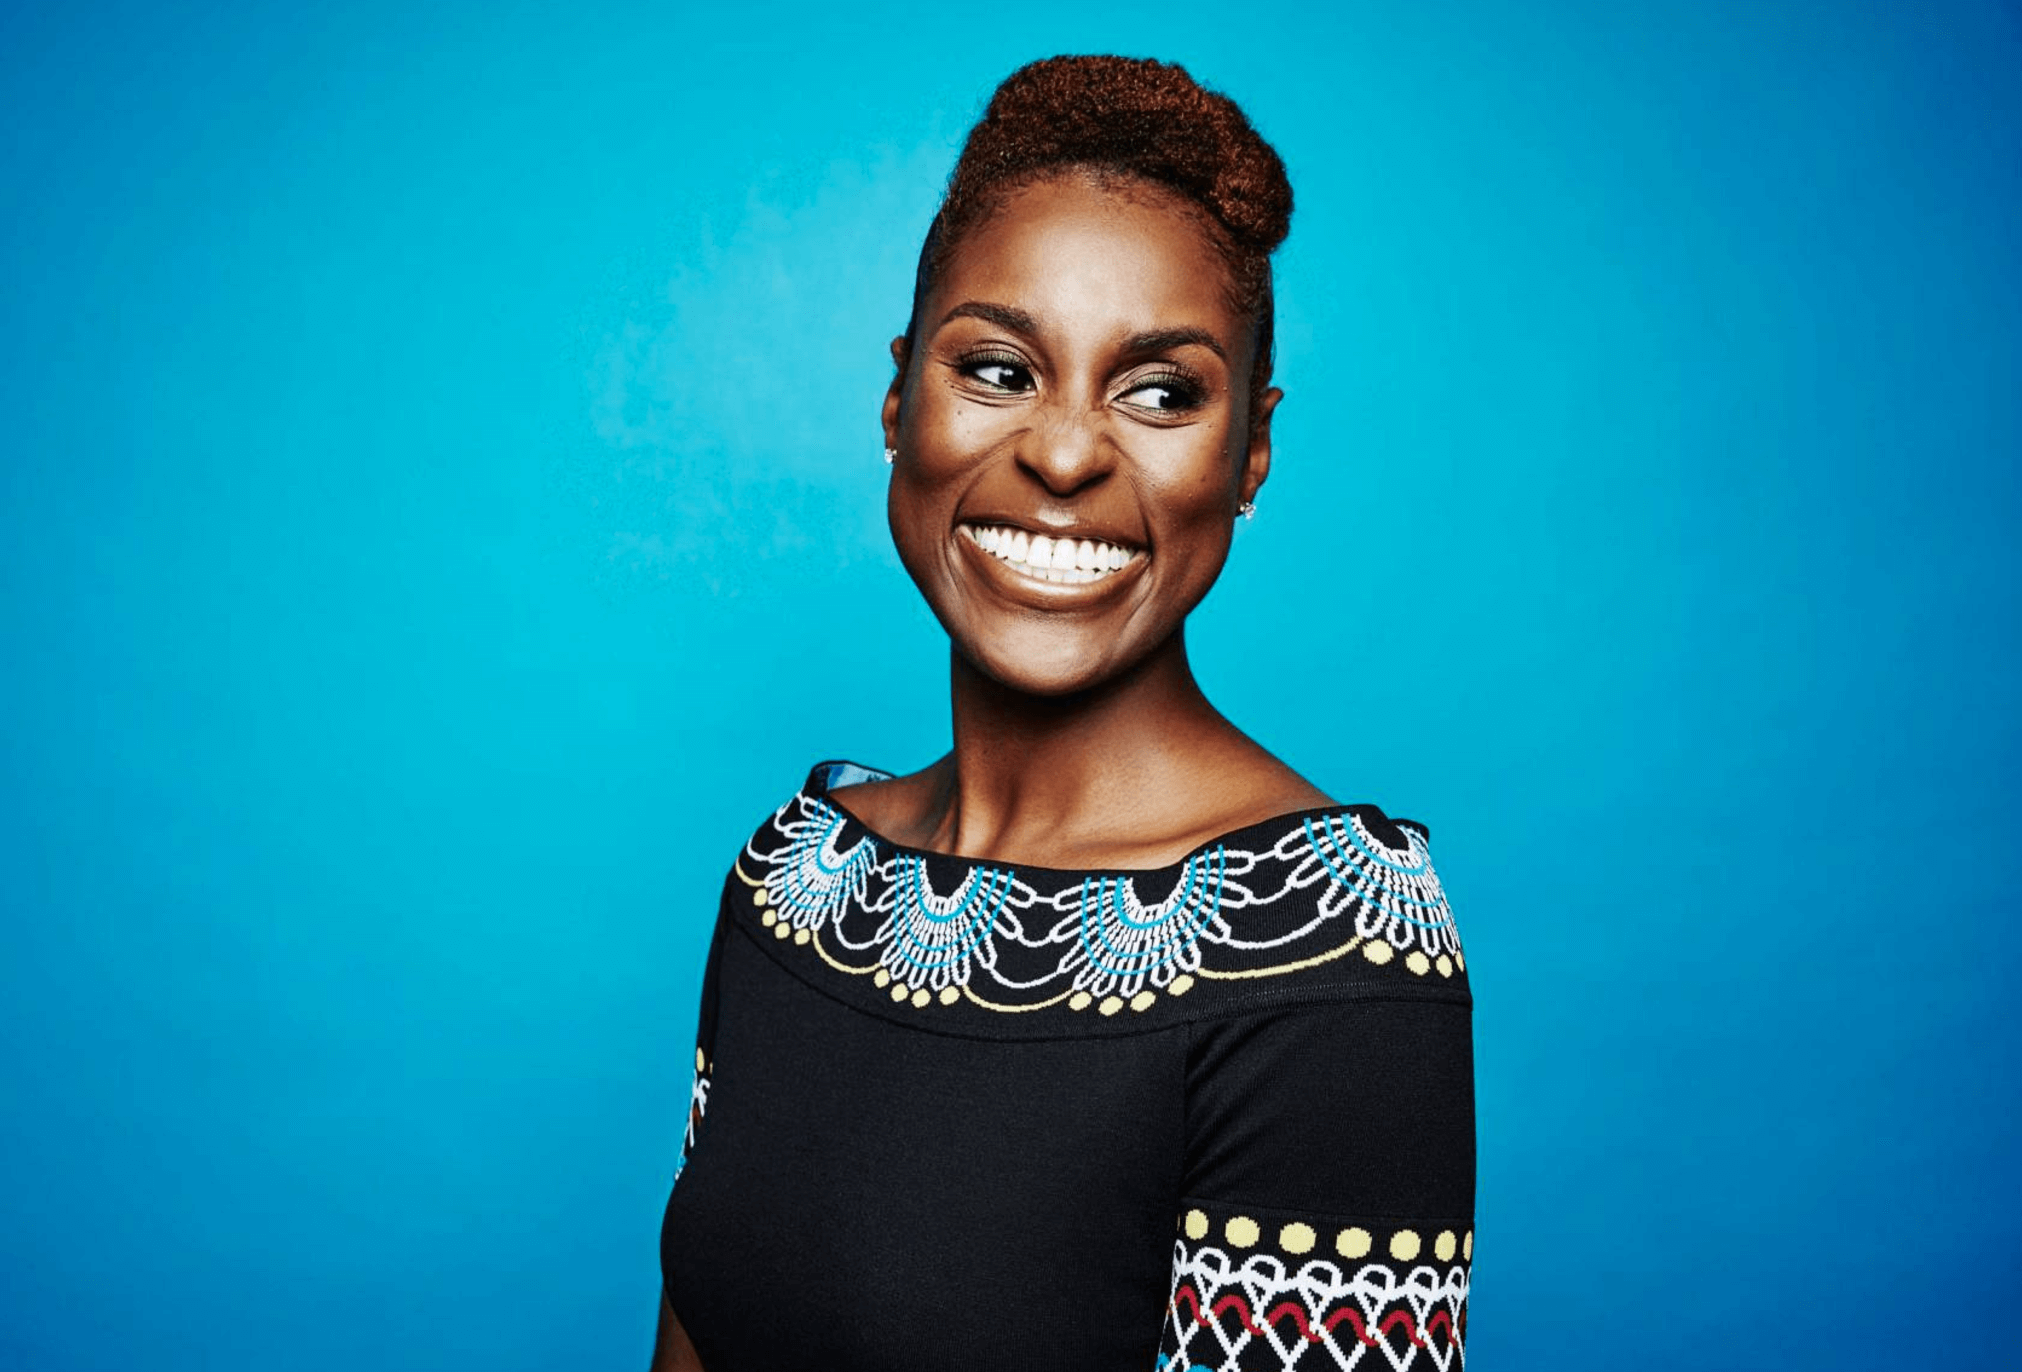 Issa Rae at Inbound 2017